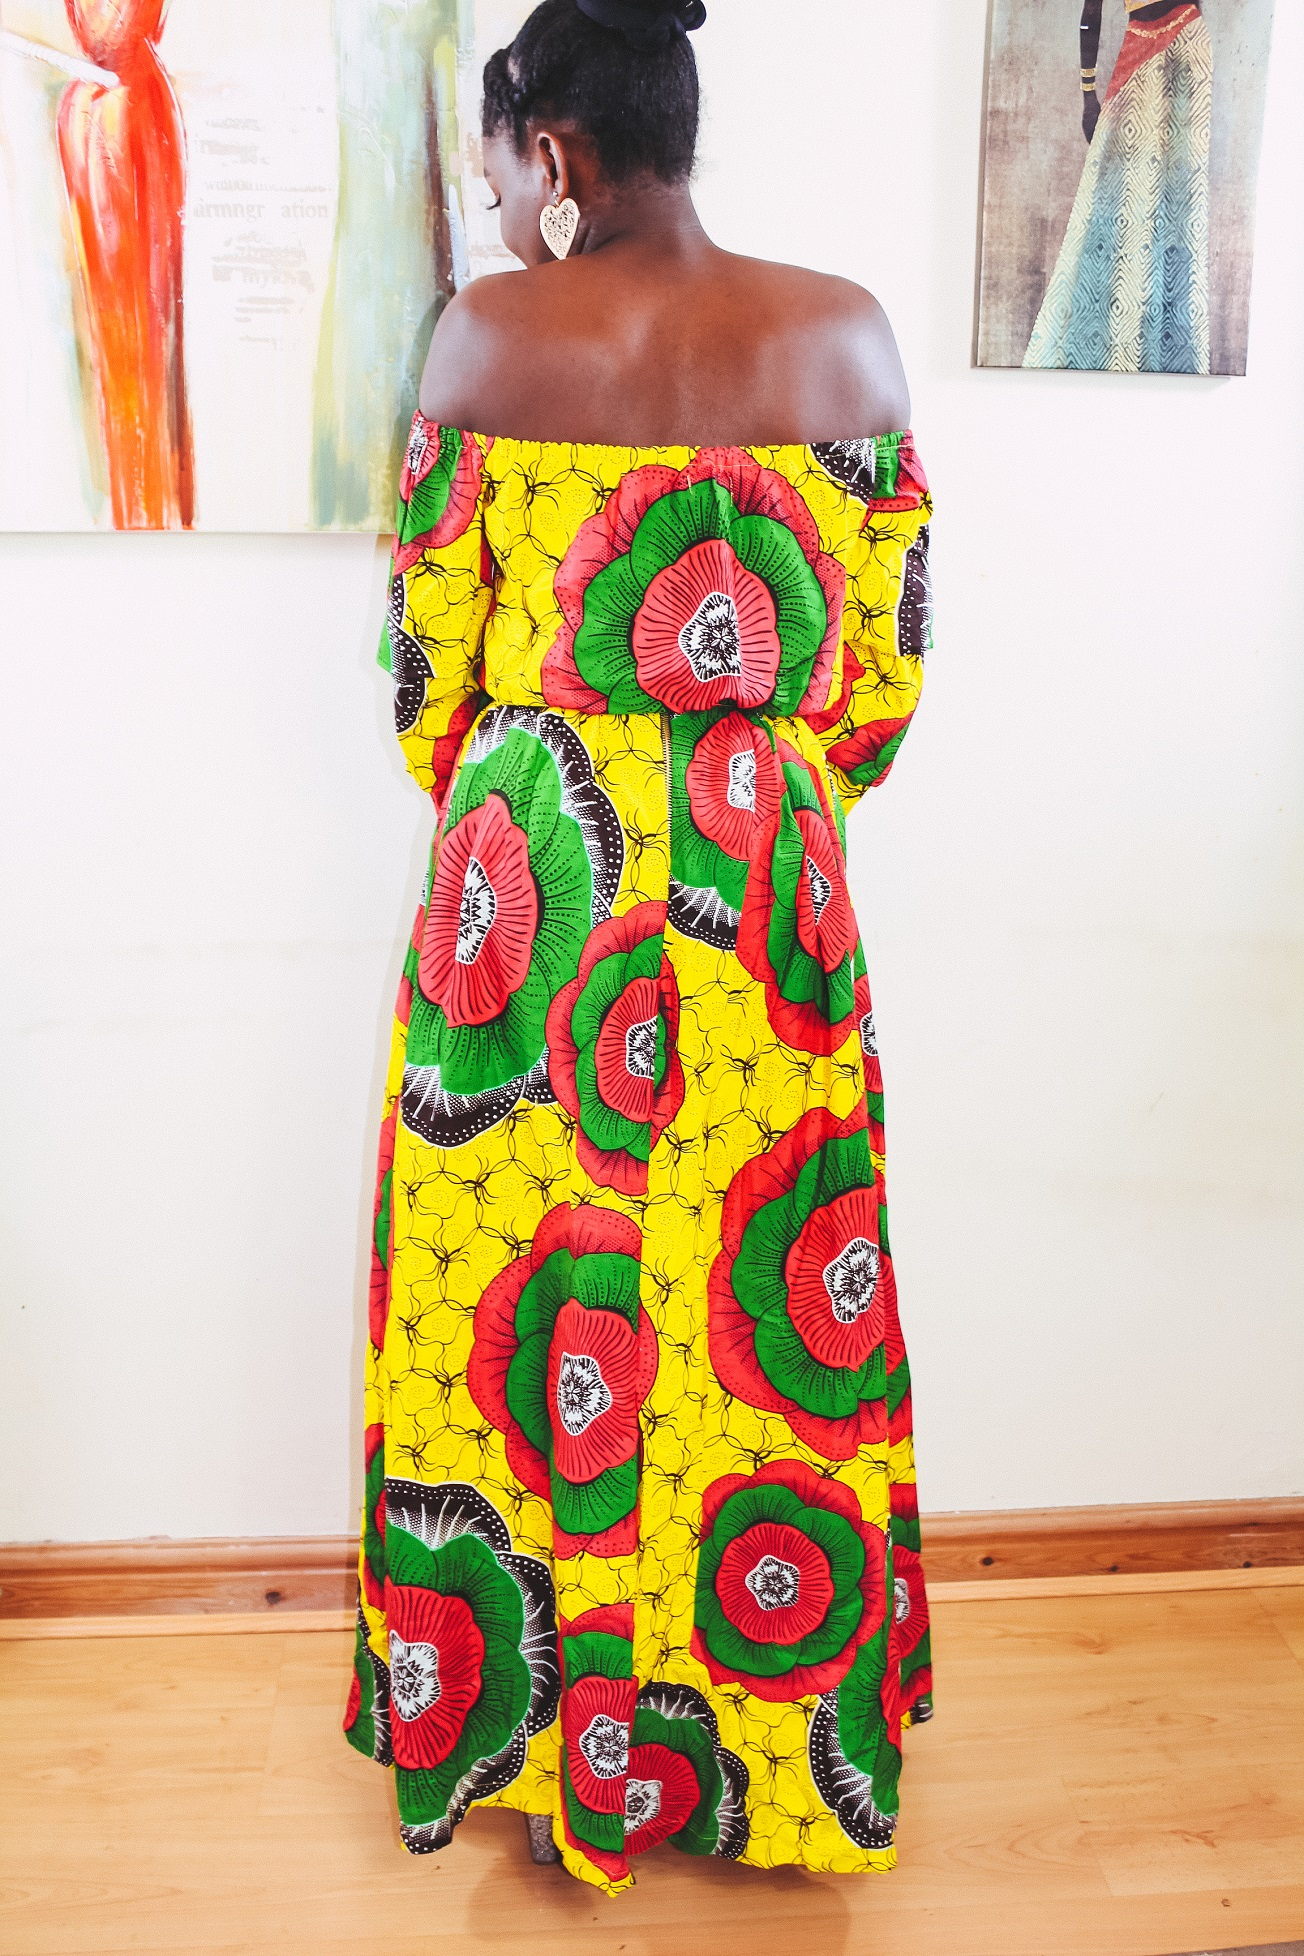 Angelle Fenton in Sunflower 2-piece Ankara Print Crop Top and thigh-High Split Maxi Skirt by Yvonne Irenroa African Fashion